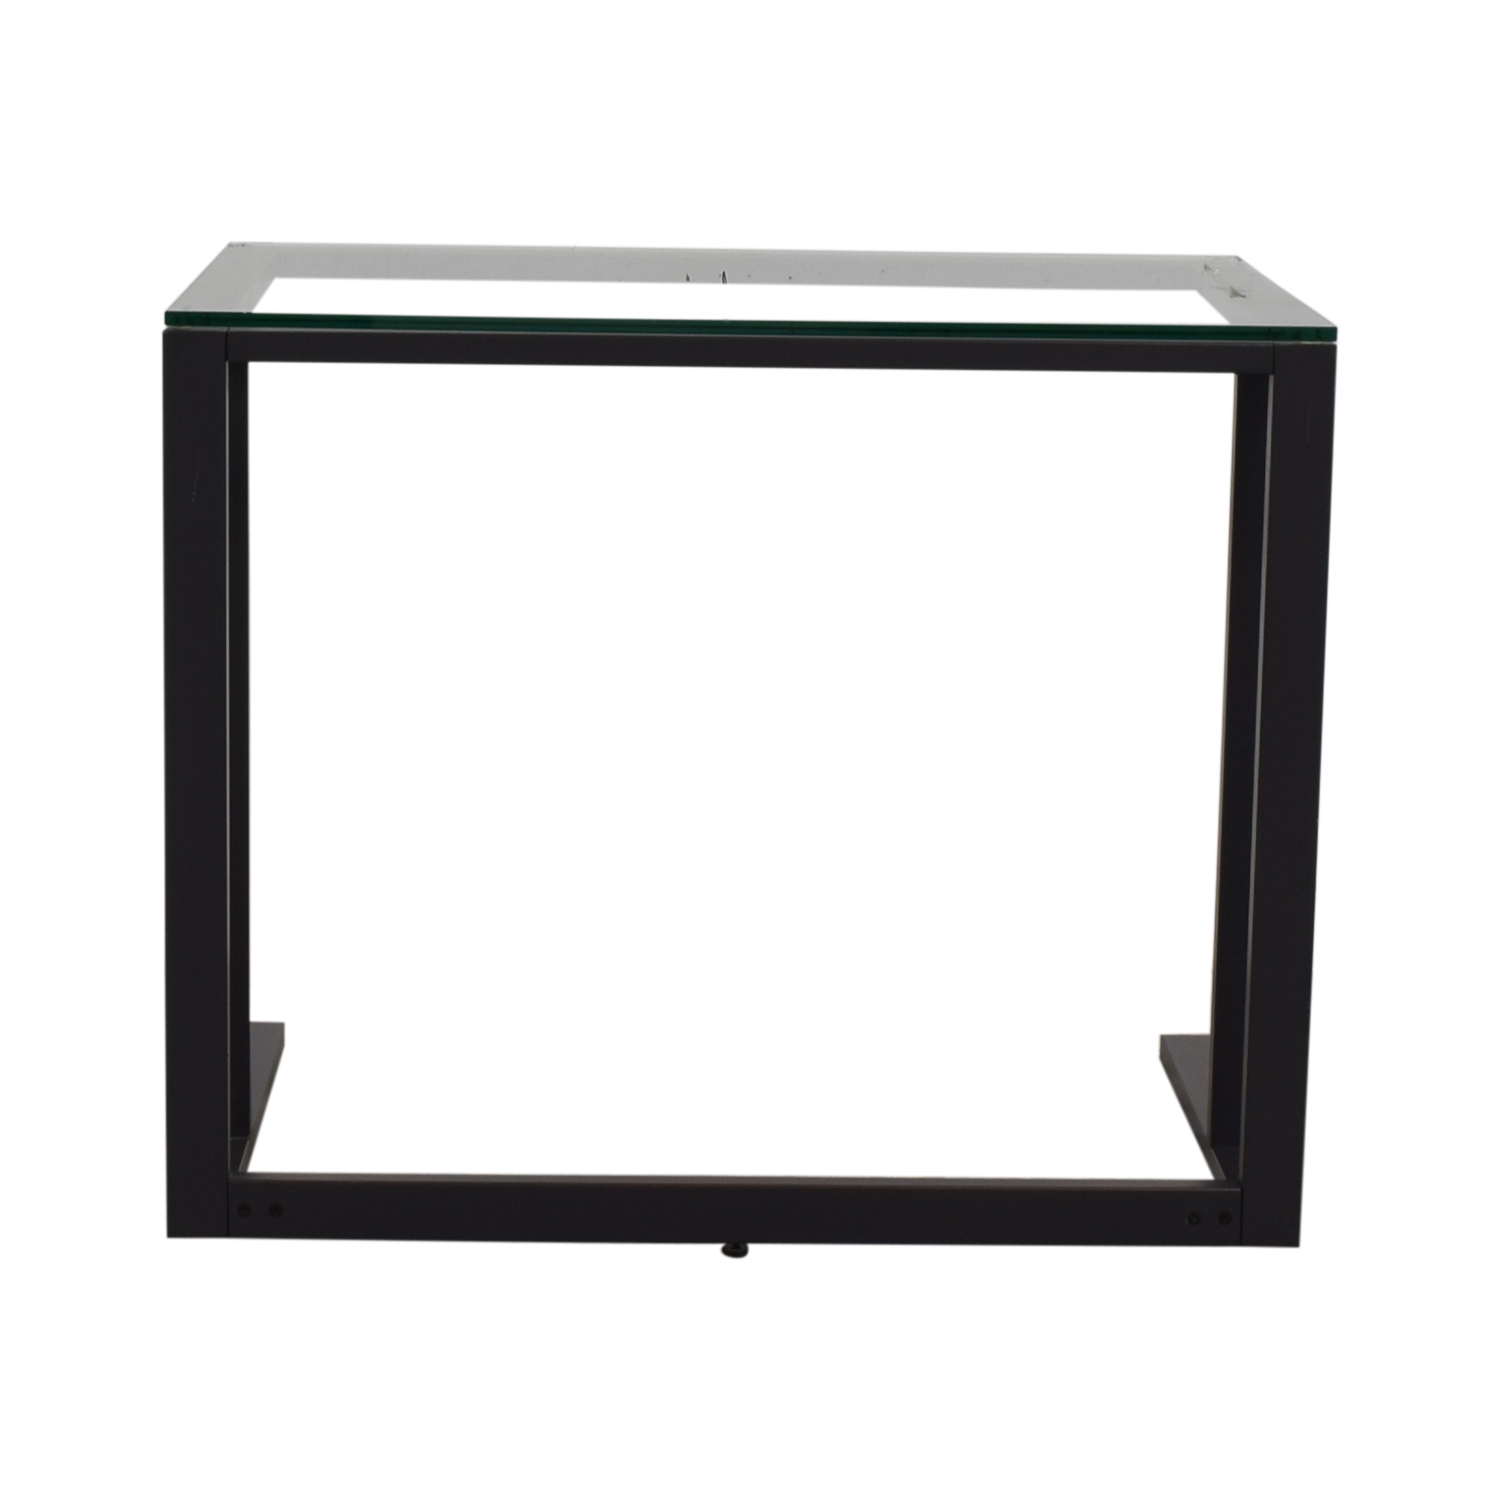 Black and Glass Desk second hand